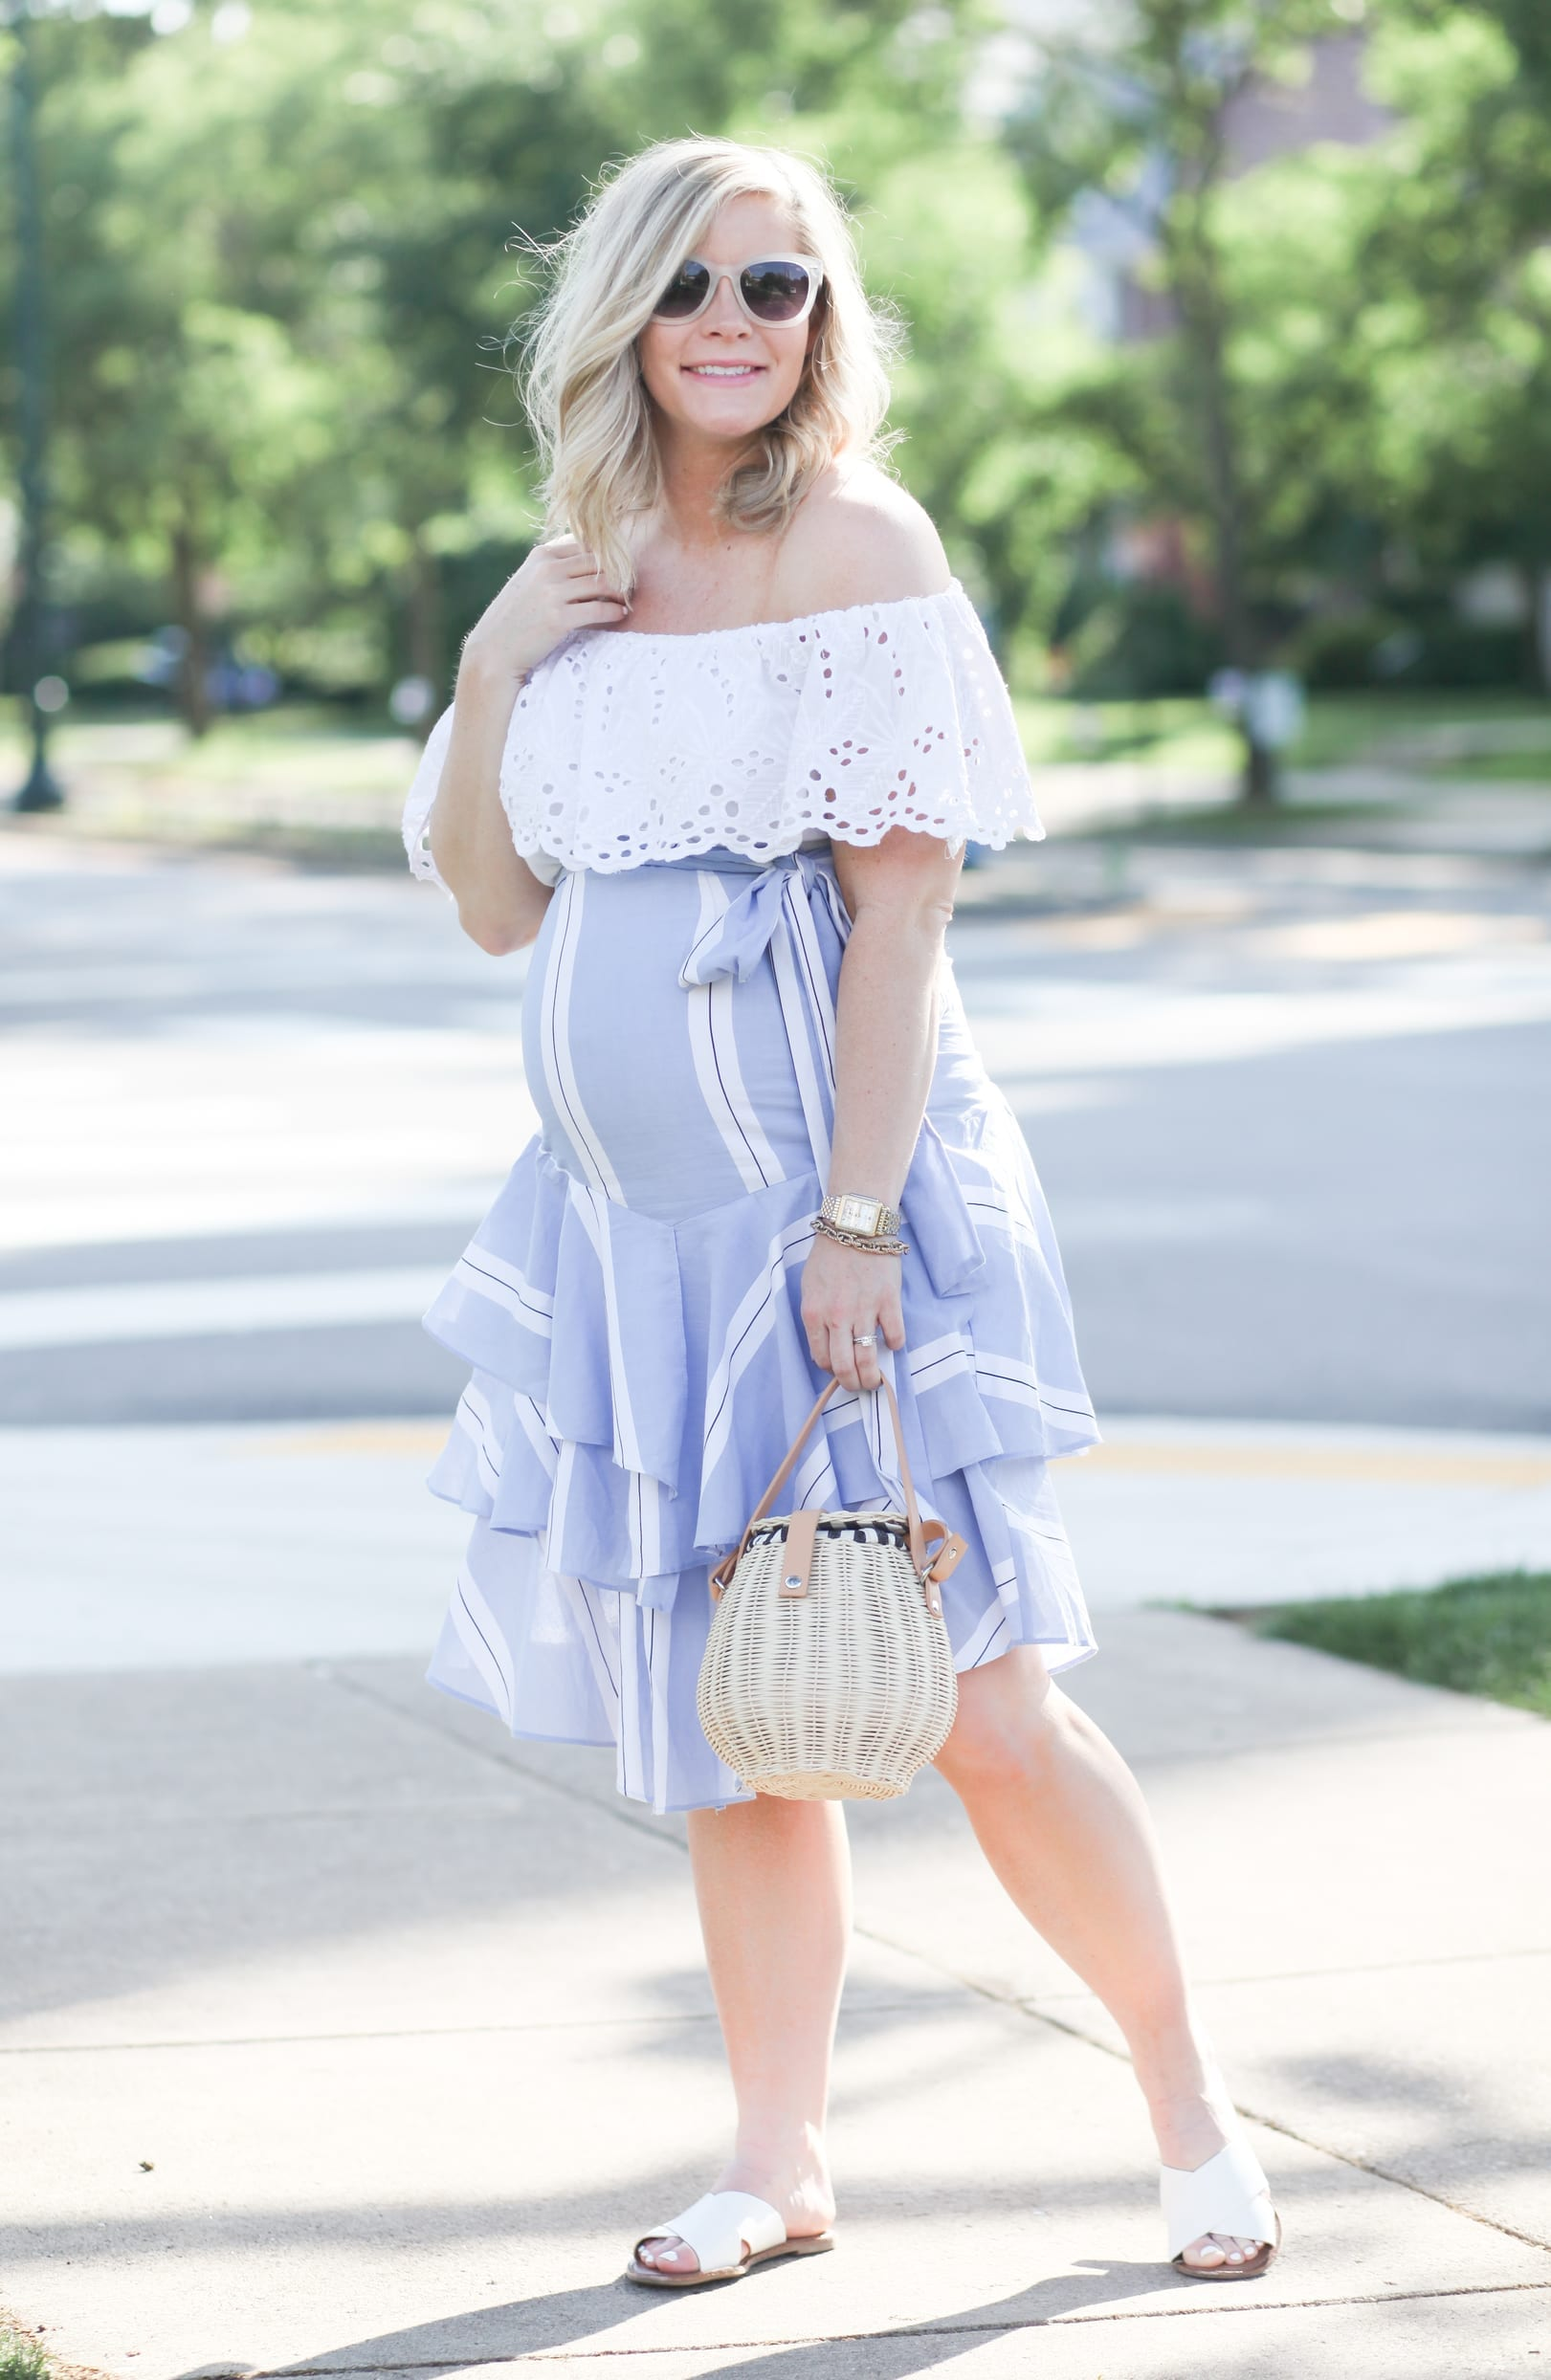 Saying Goodbye to Summer and Seasonal Ruffle Trends